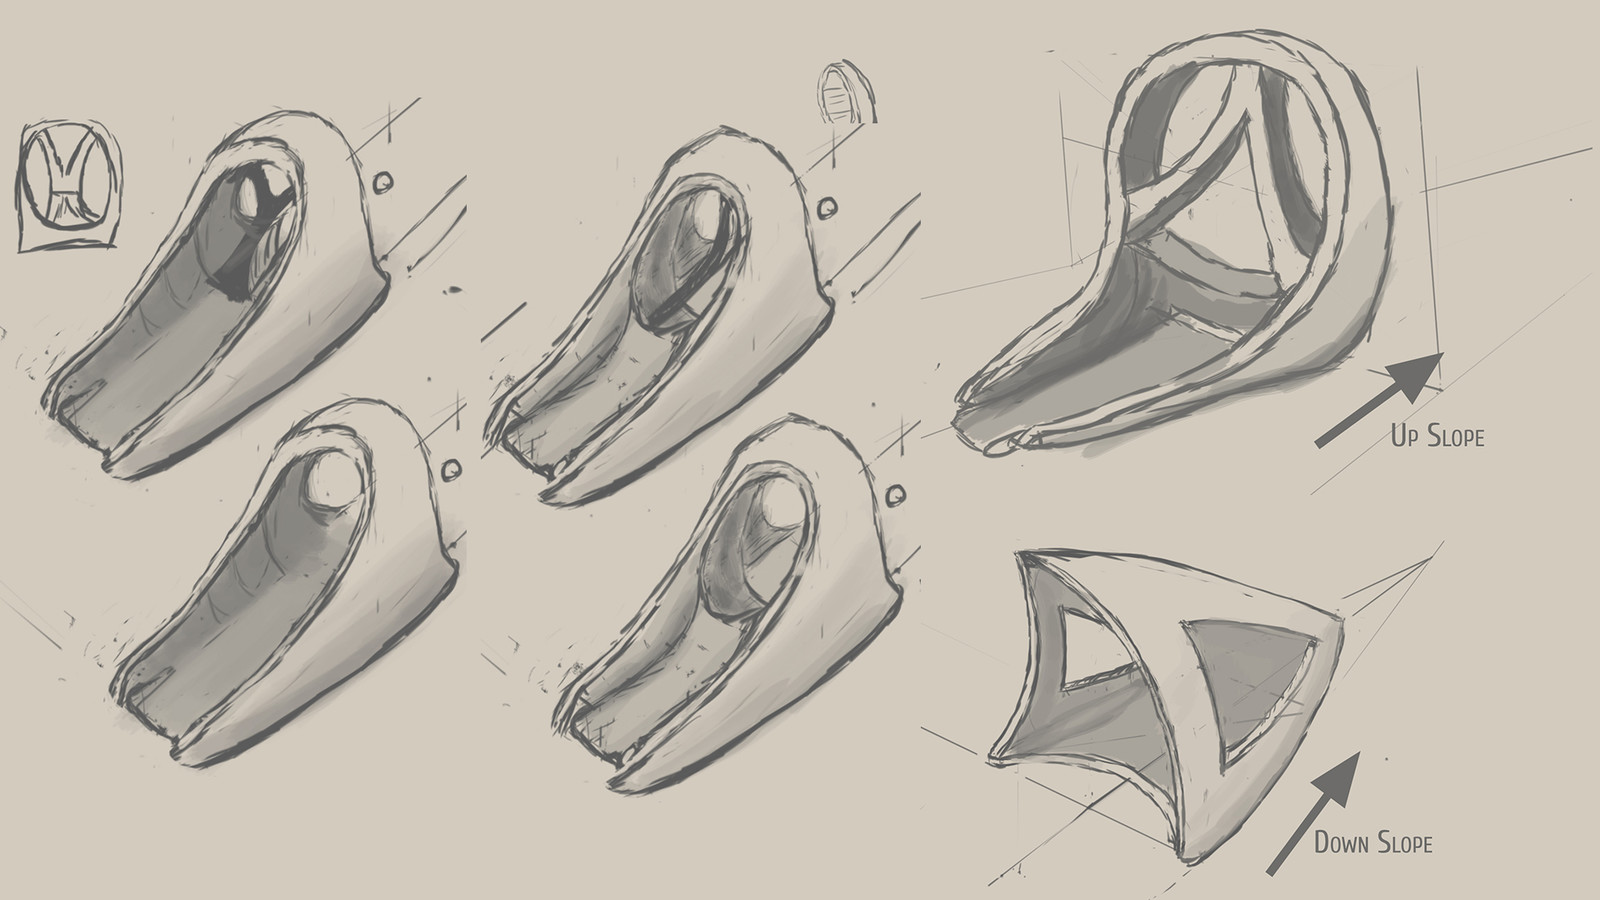 A compilation of some of the early design sketches. The team ultimately moved forward with the top right version.  This evolved into the product released in the previous images.